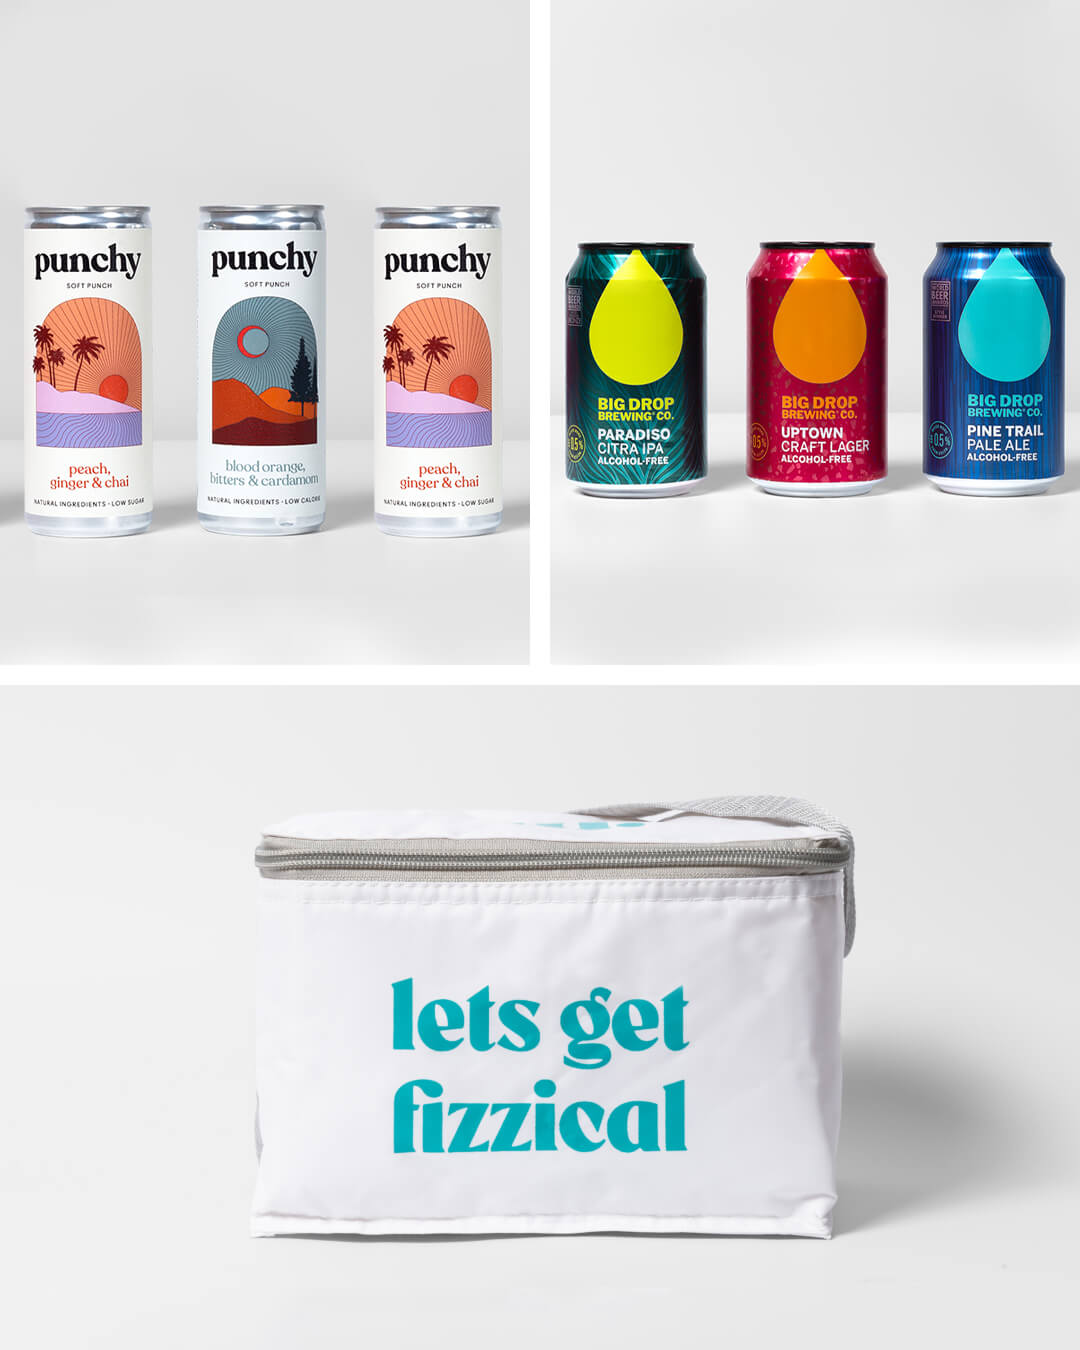 Punchy Drink alcohol free cocktail cans, big drop alcohol free craft beer cans & ta. cool bag